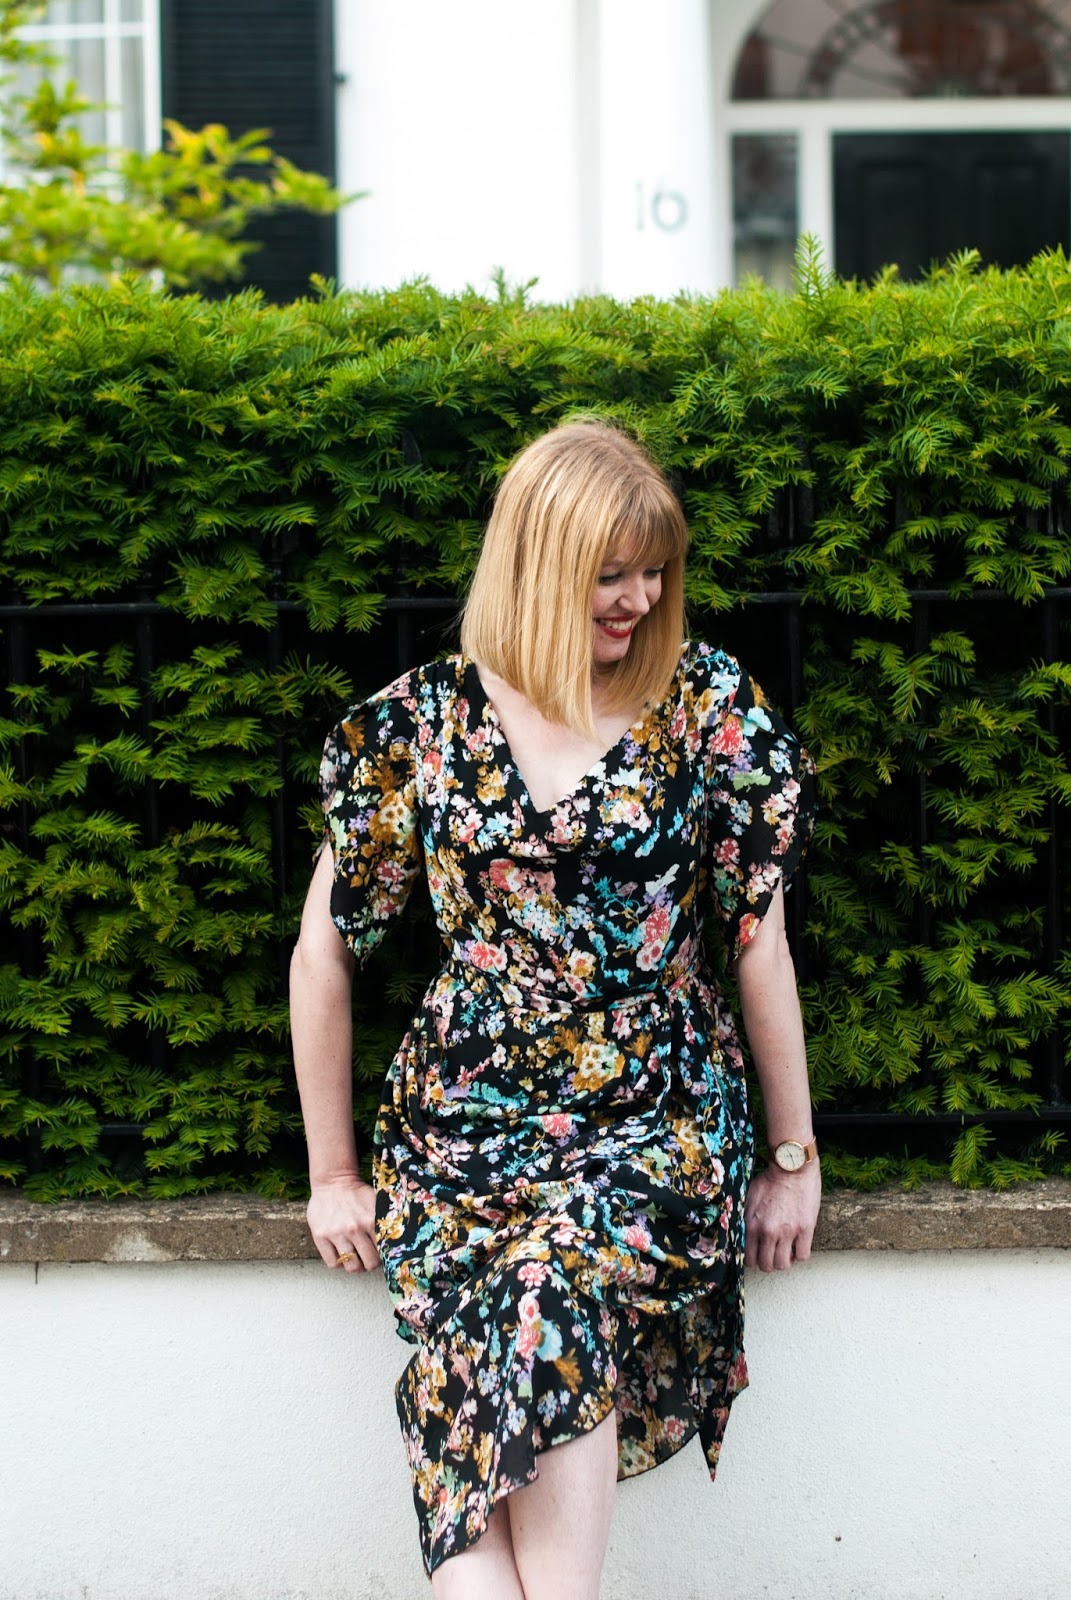 Floral draped vintage style dress with leopard print espadrilles, over 40 style, over 40 blogger